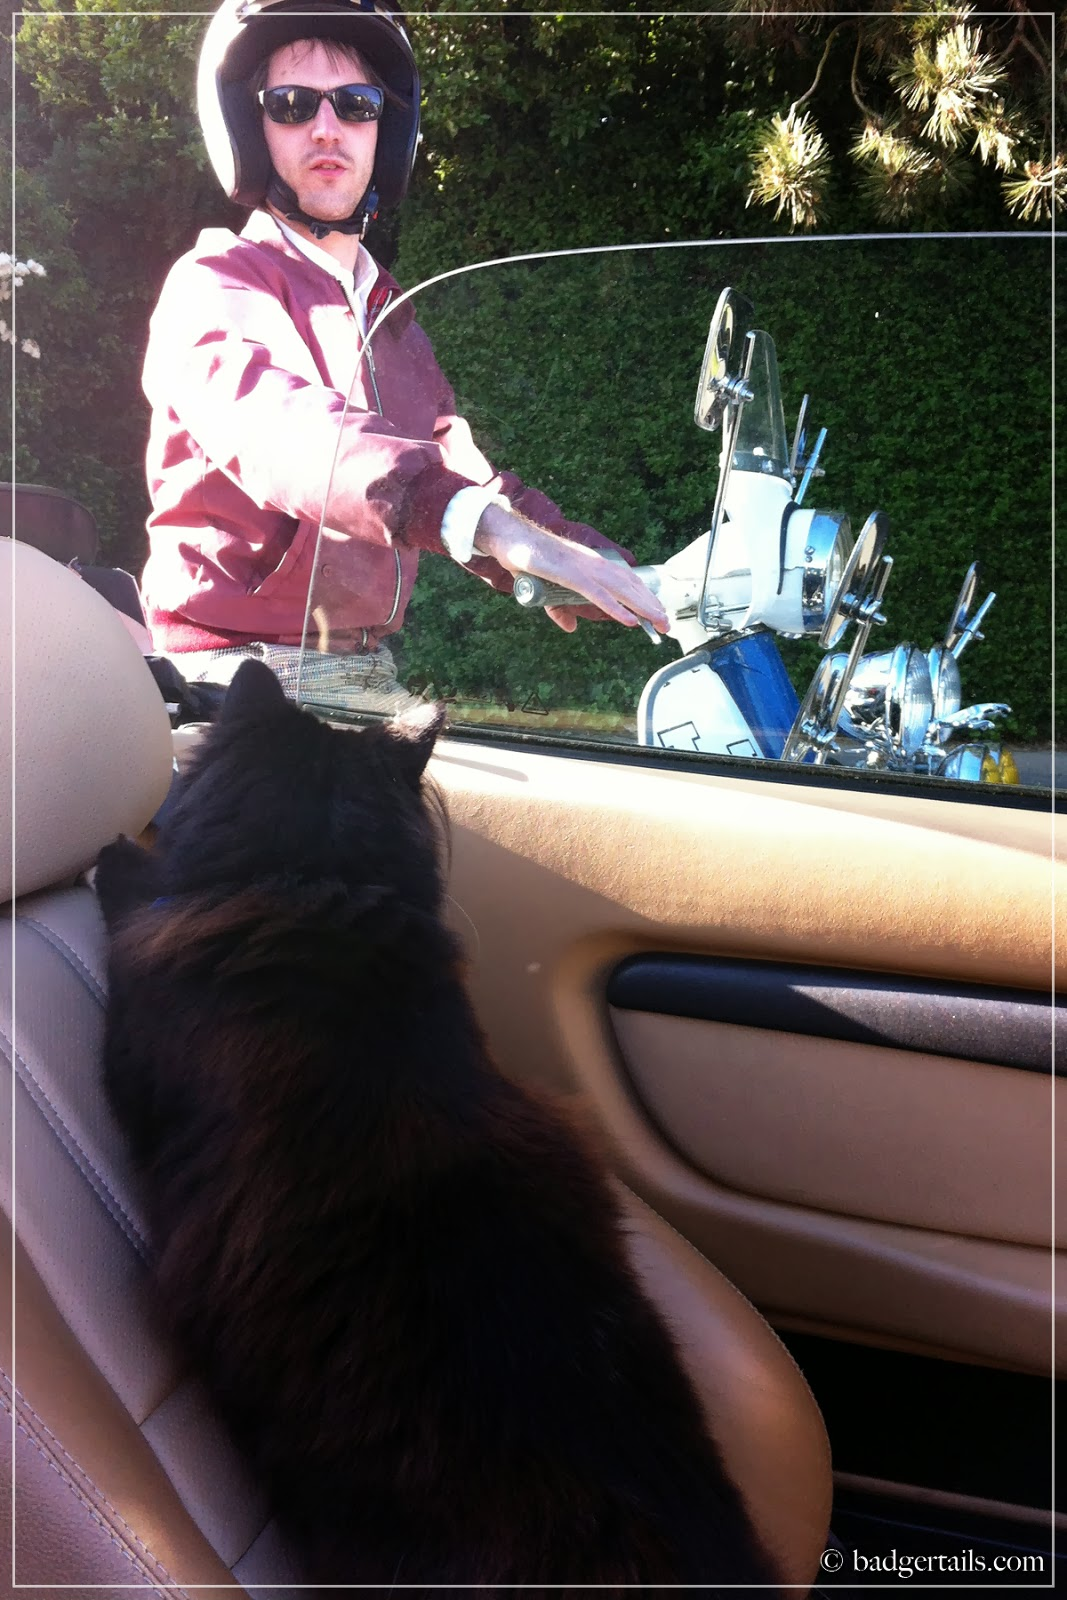 black cat in convertible car in summer greets her dad on scooter